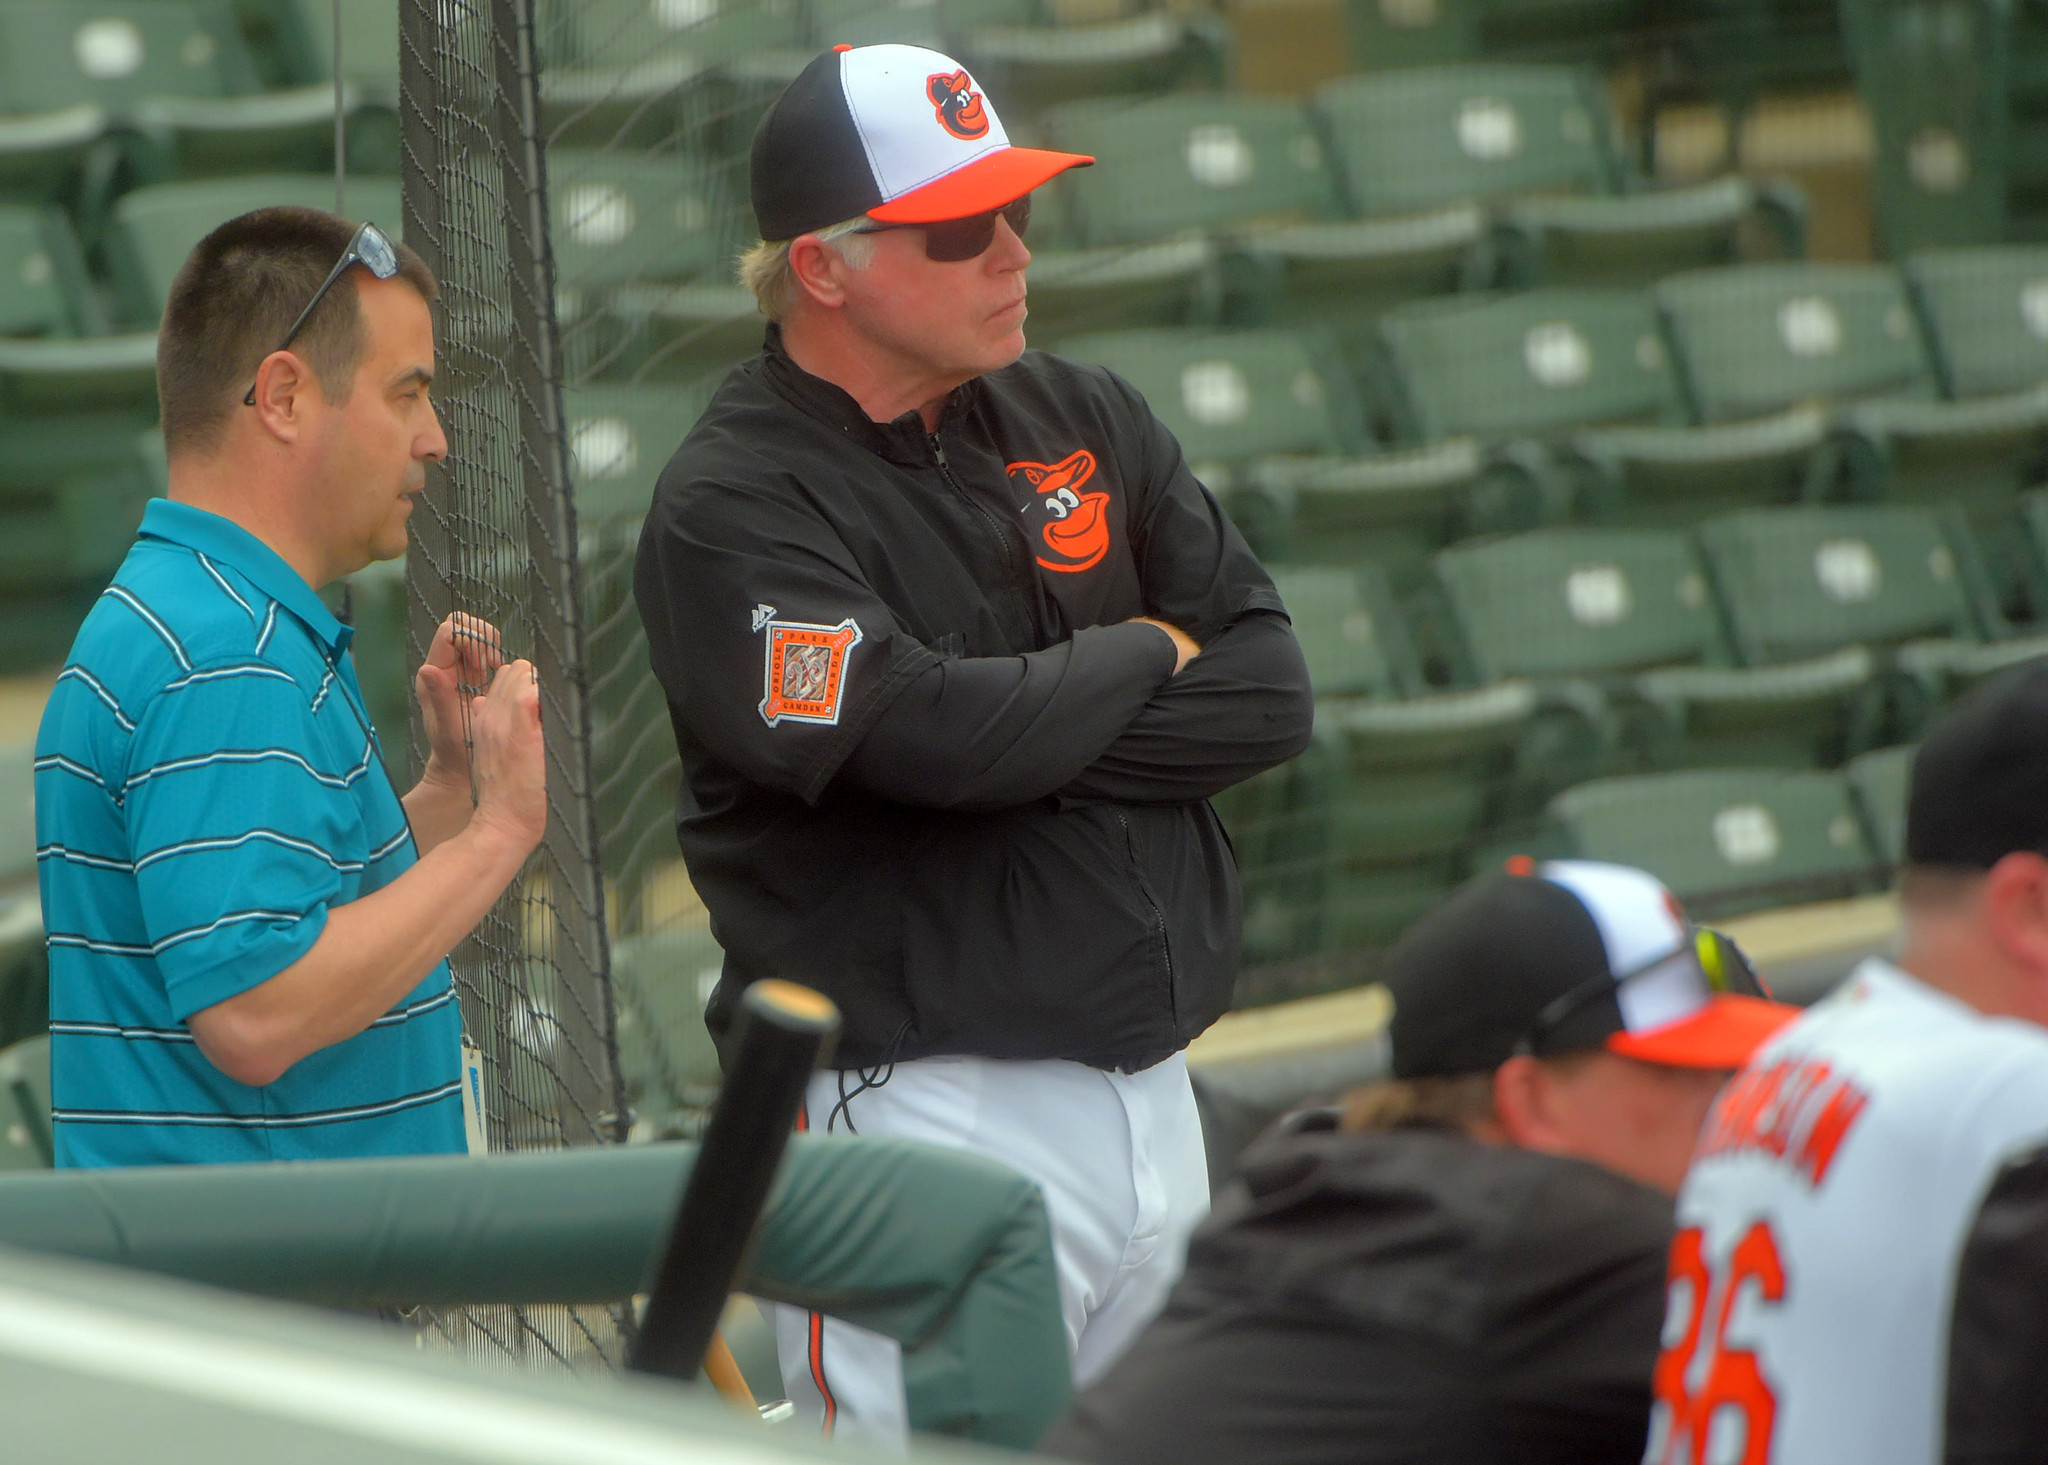 Bal-orioles-taking-advantage-of-long-spring-training-to-get-rare-closer-look-at-minor-leaguers-20170302